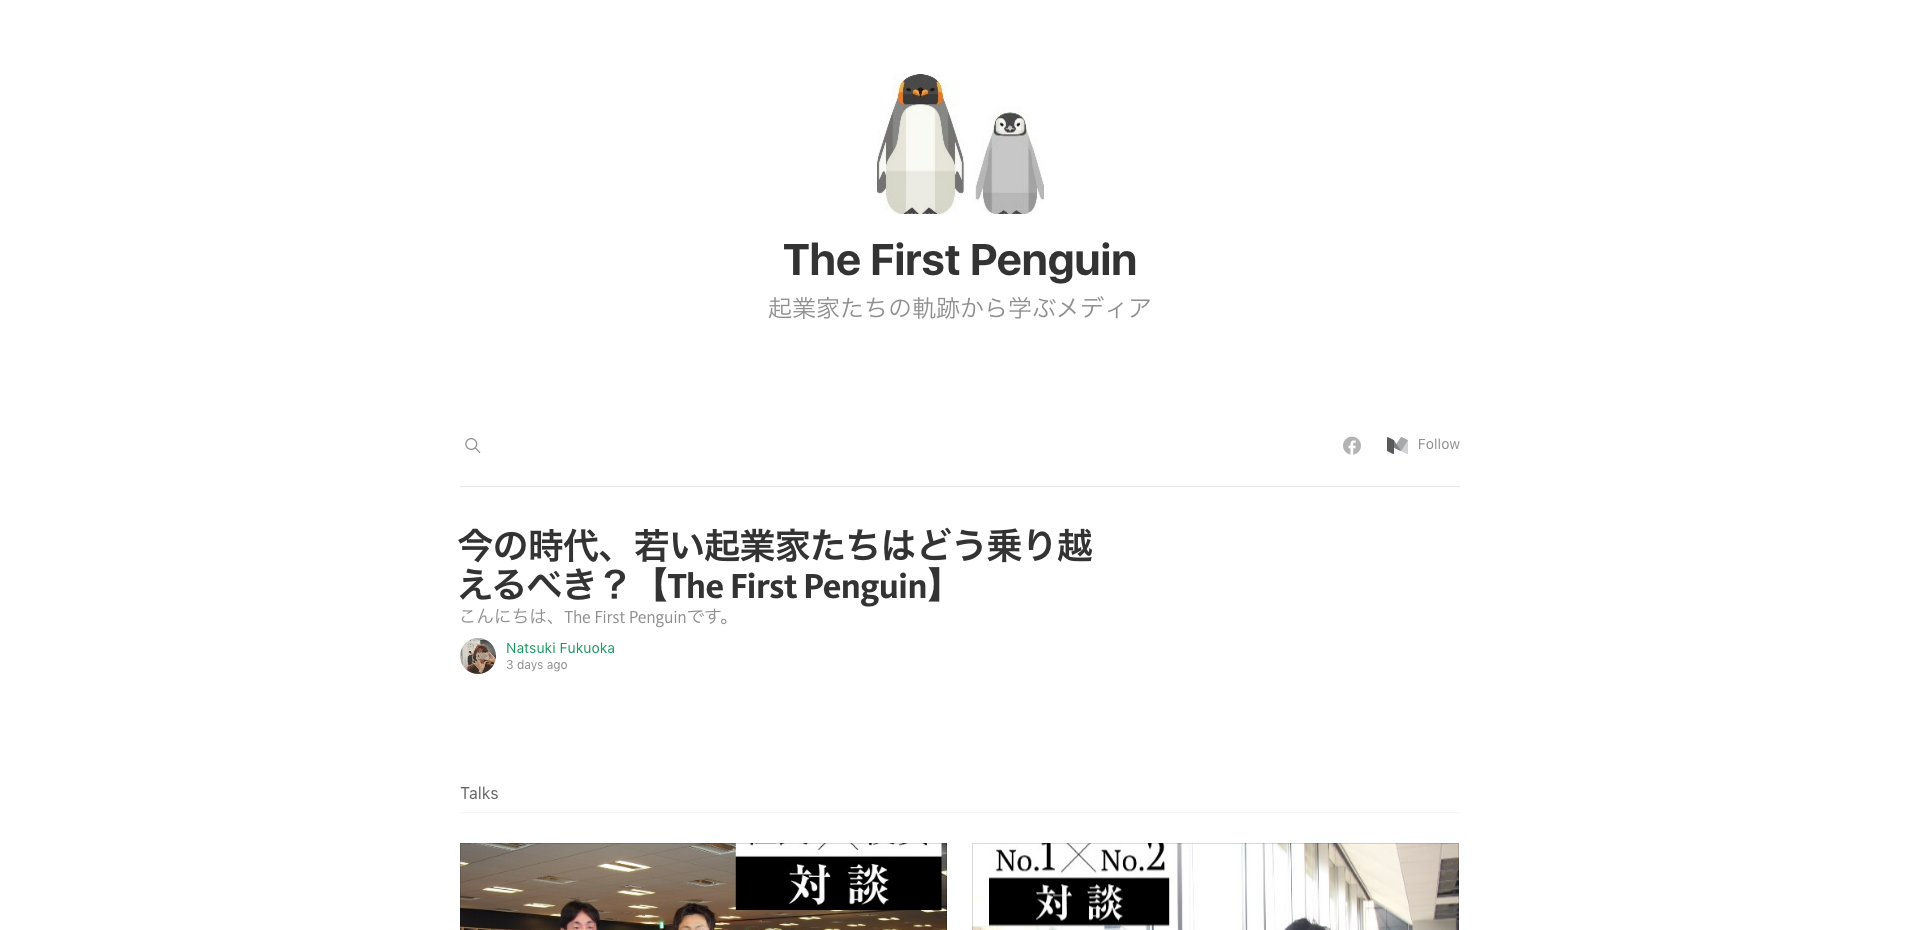 The First Penguin